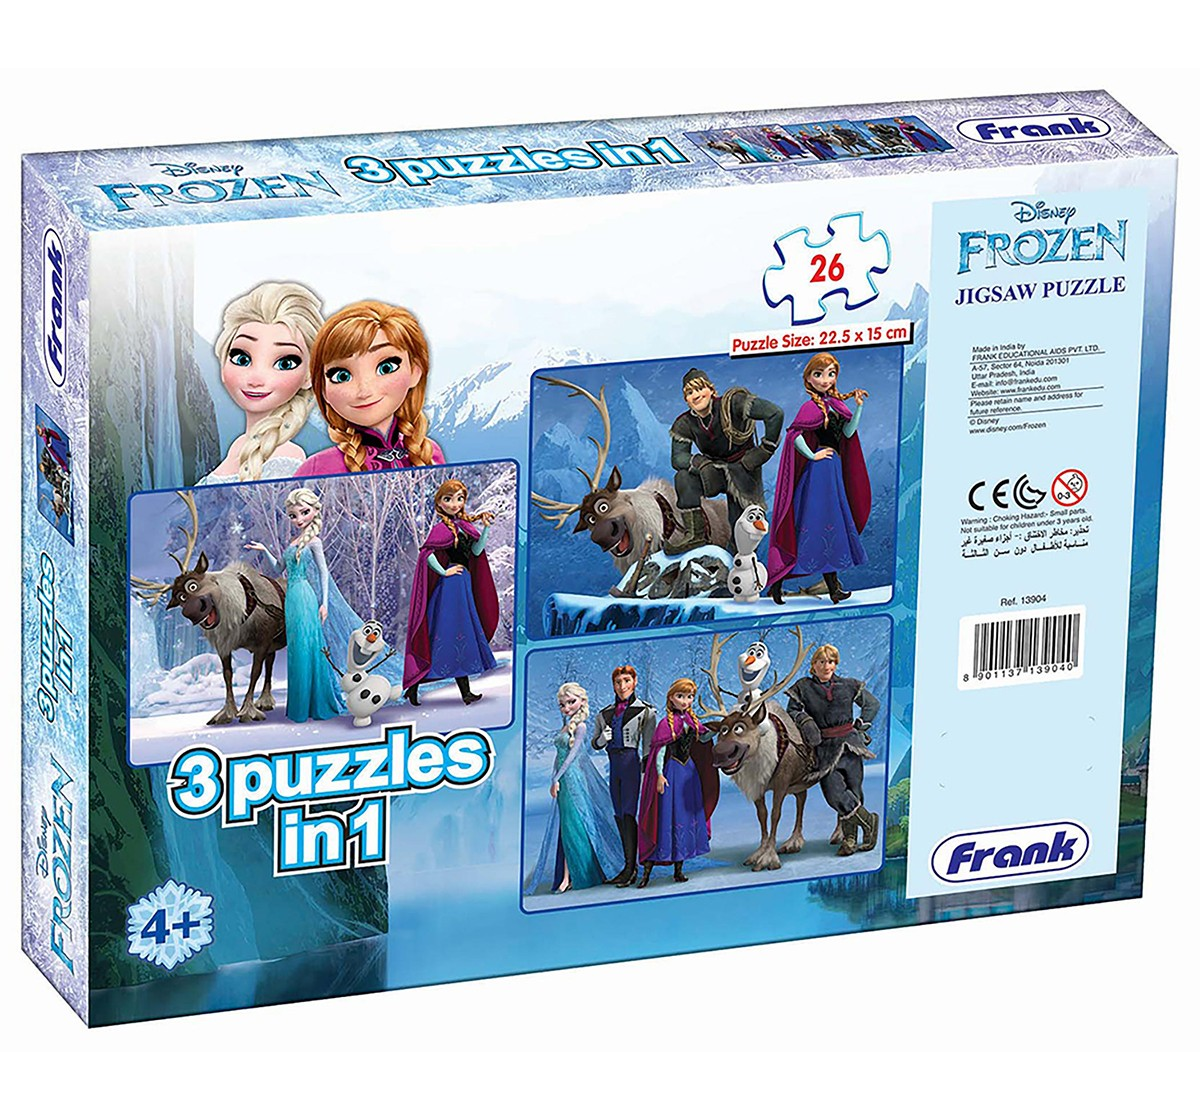 Frank Frozen 3 In 1 Puzzle Puzzles for Kids age 5Y+